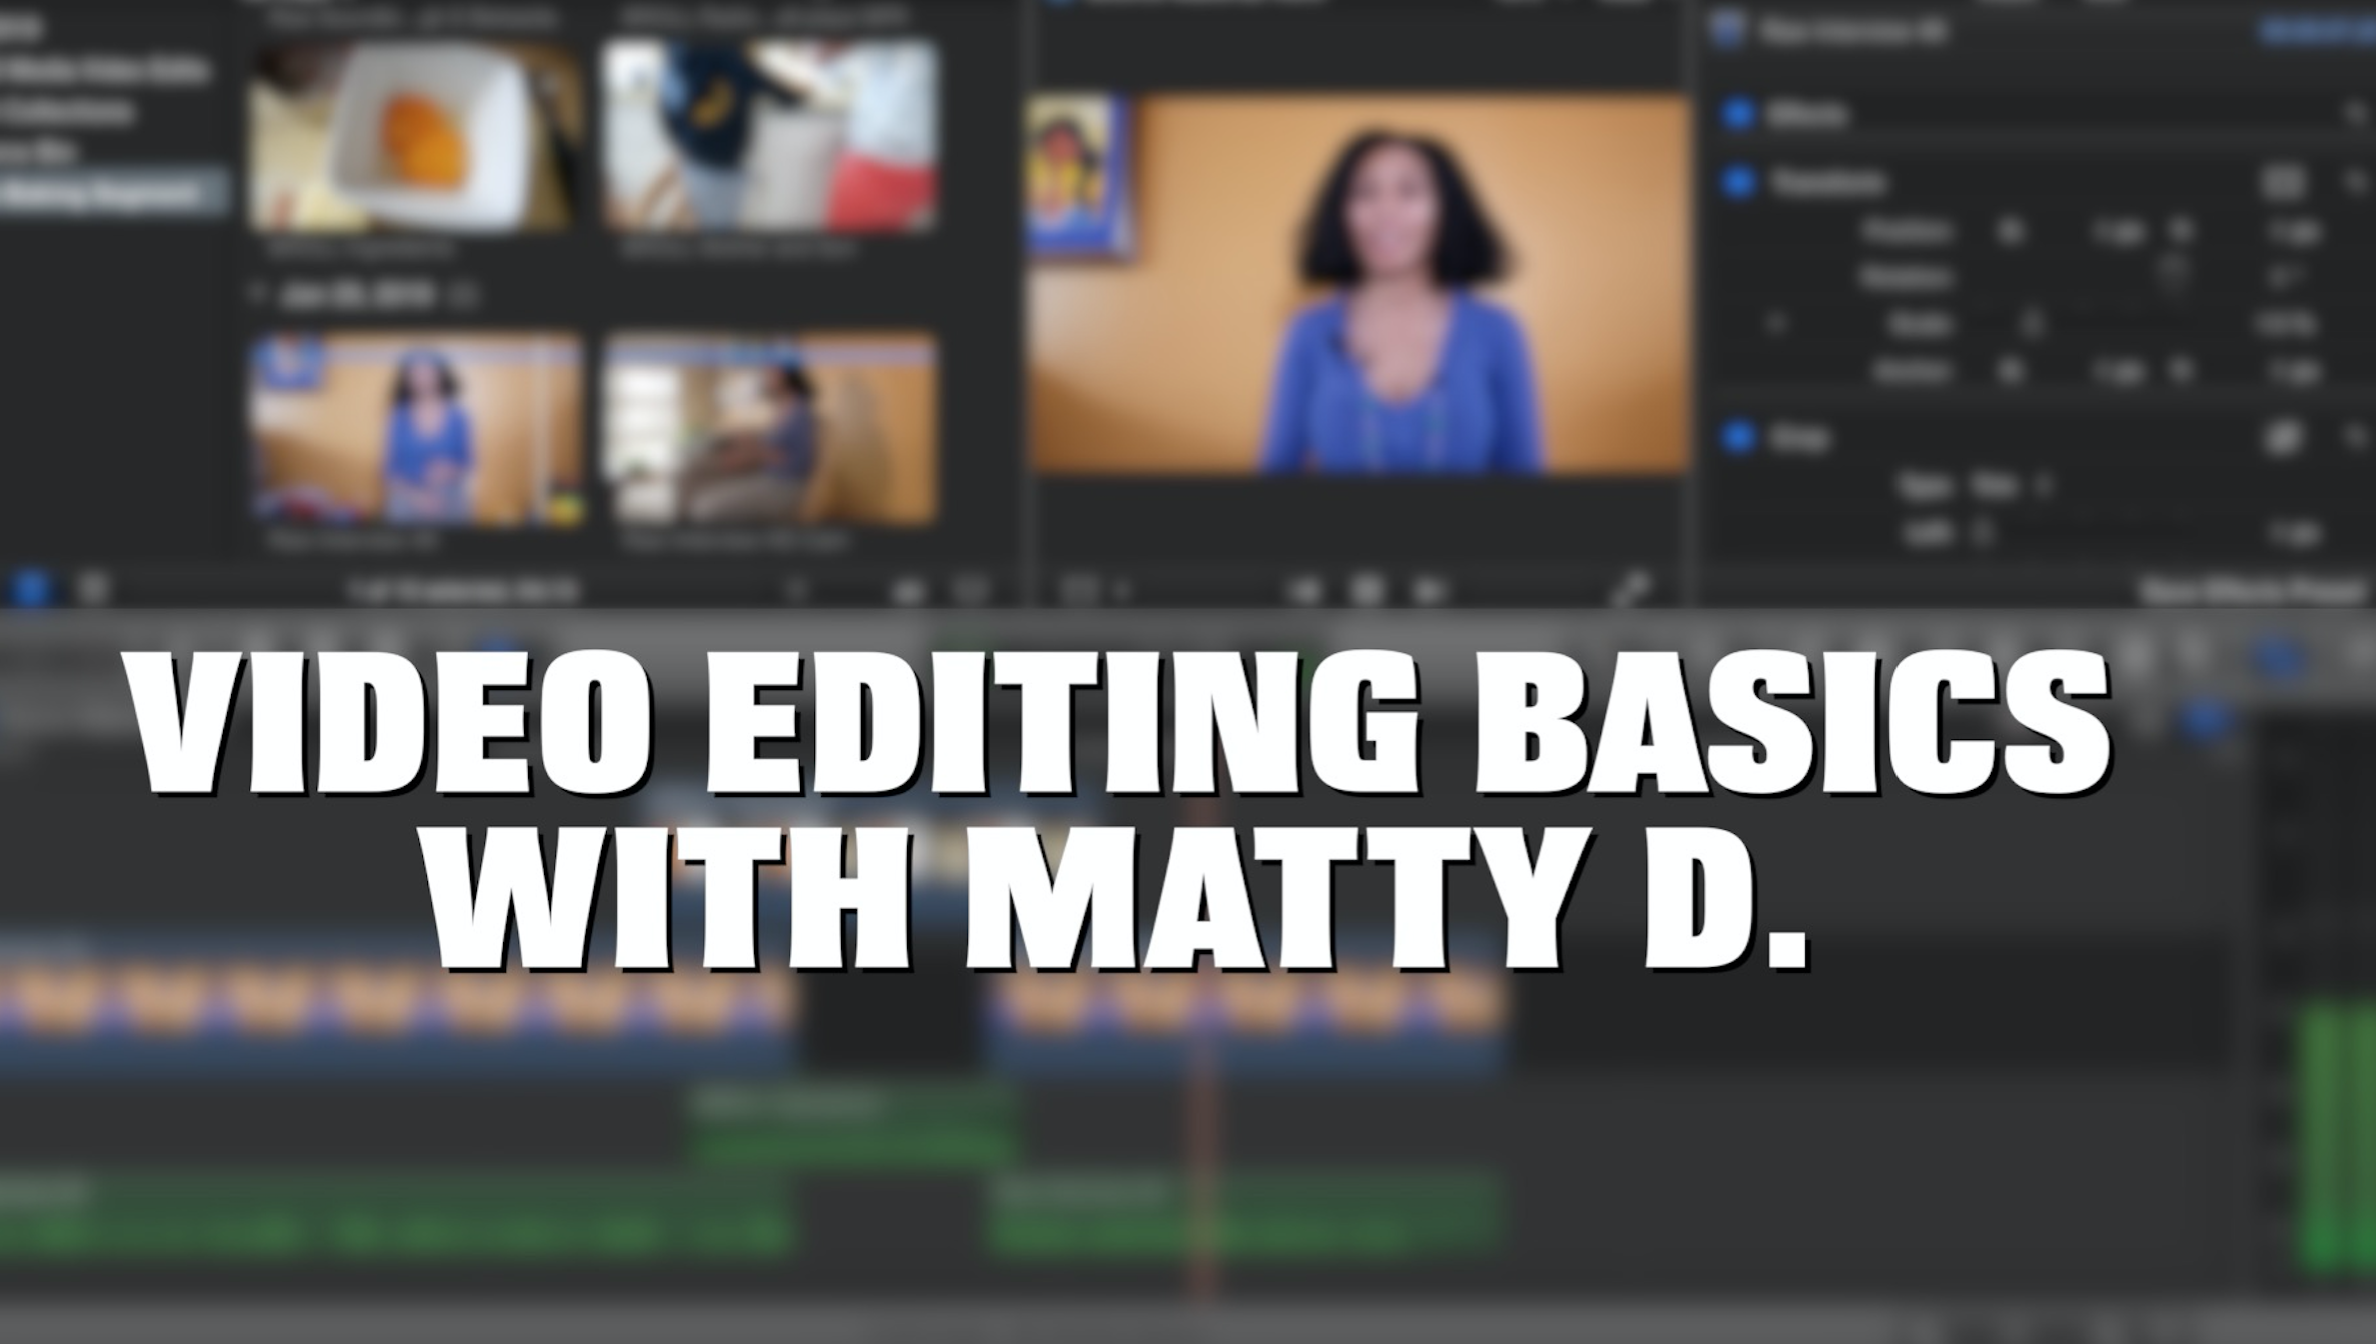 Free Video Editing Class This Thursday with Matty D.